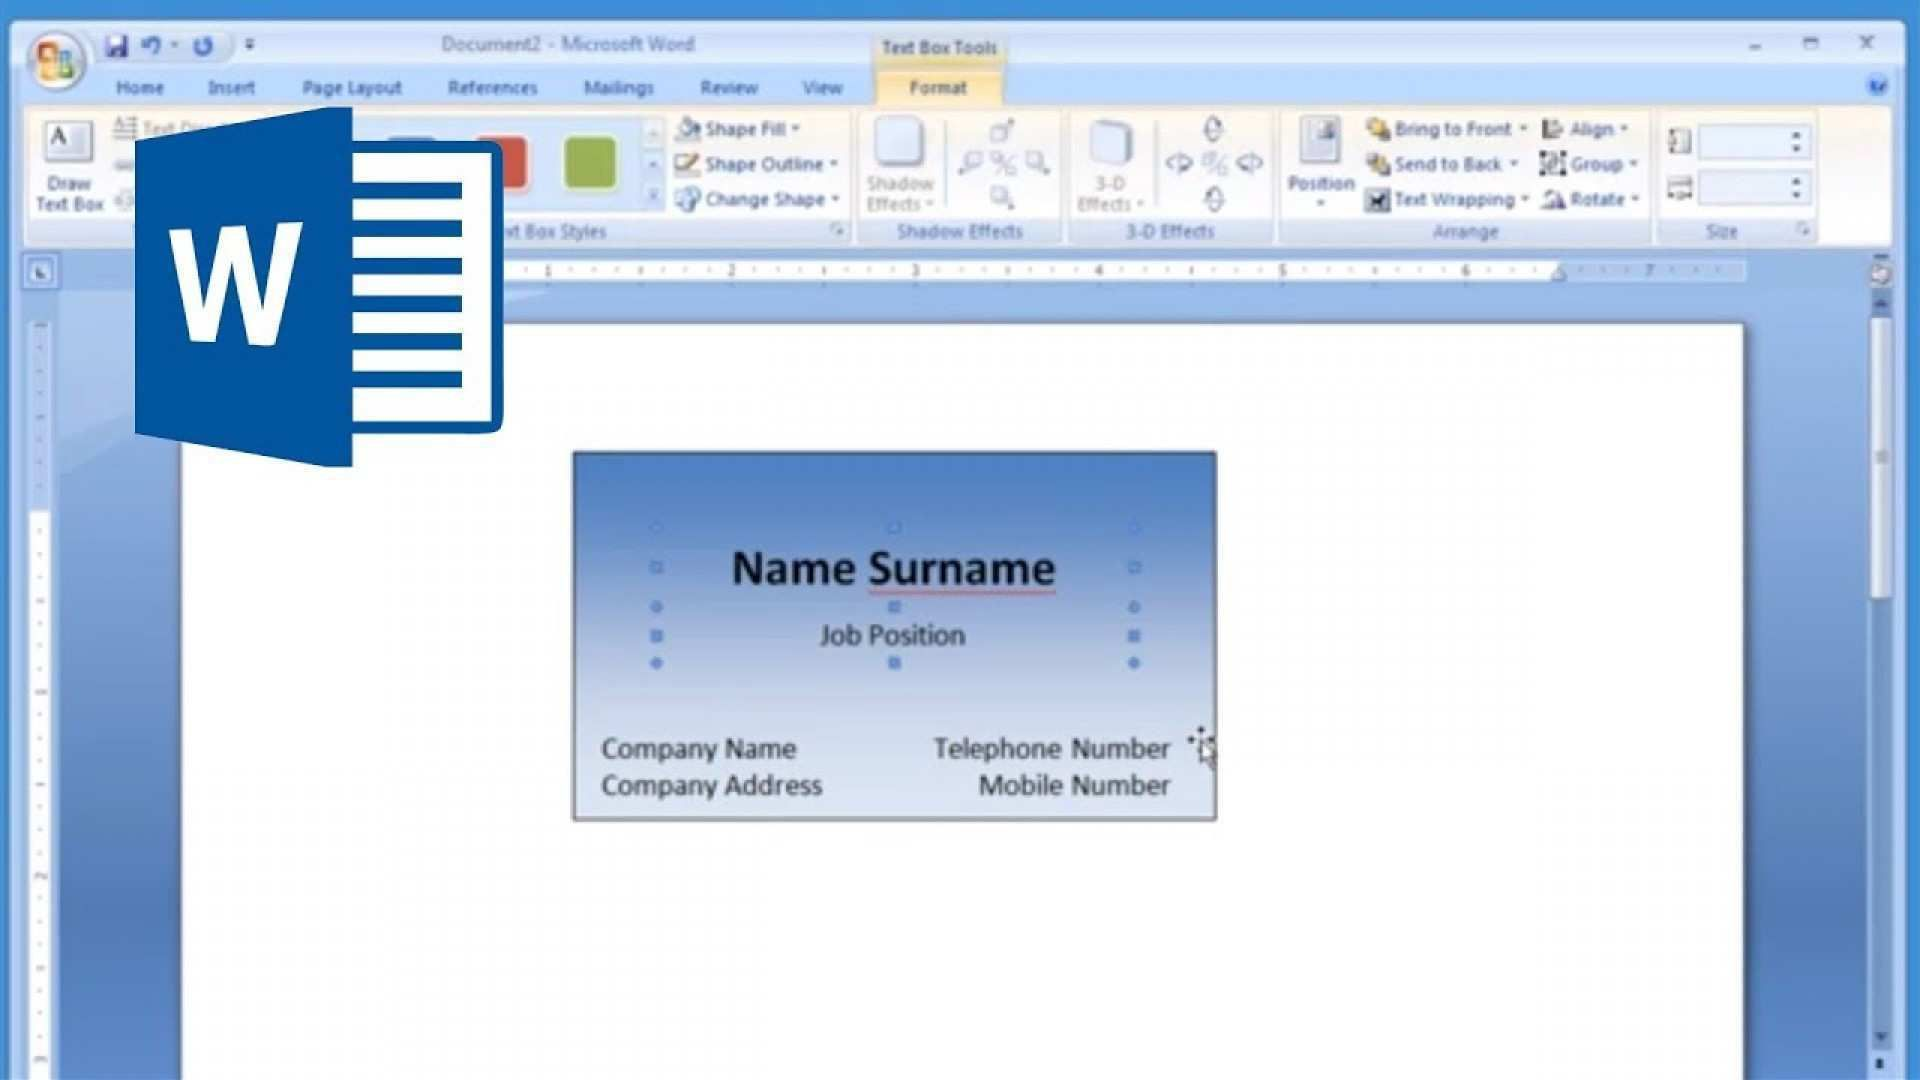 002 Incredible Busines Card Template Microsoft Word Highest Quality  Avery 8 Per Page How To Make A Layout OnFull